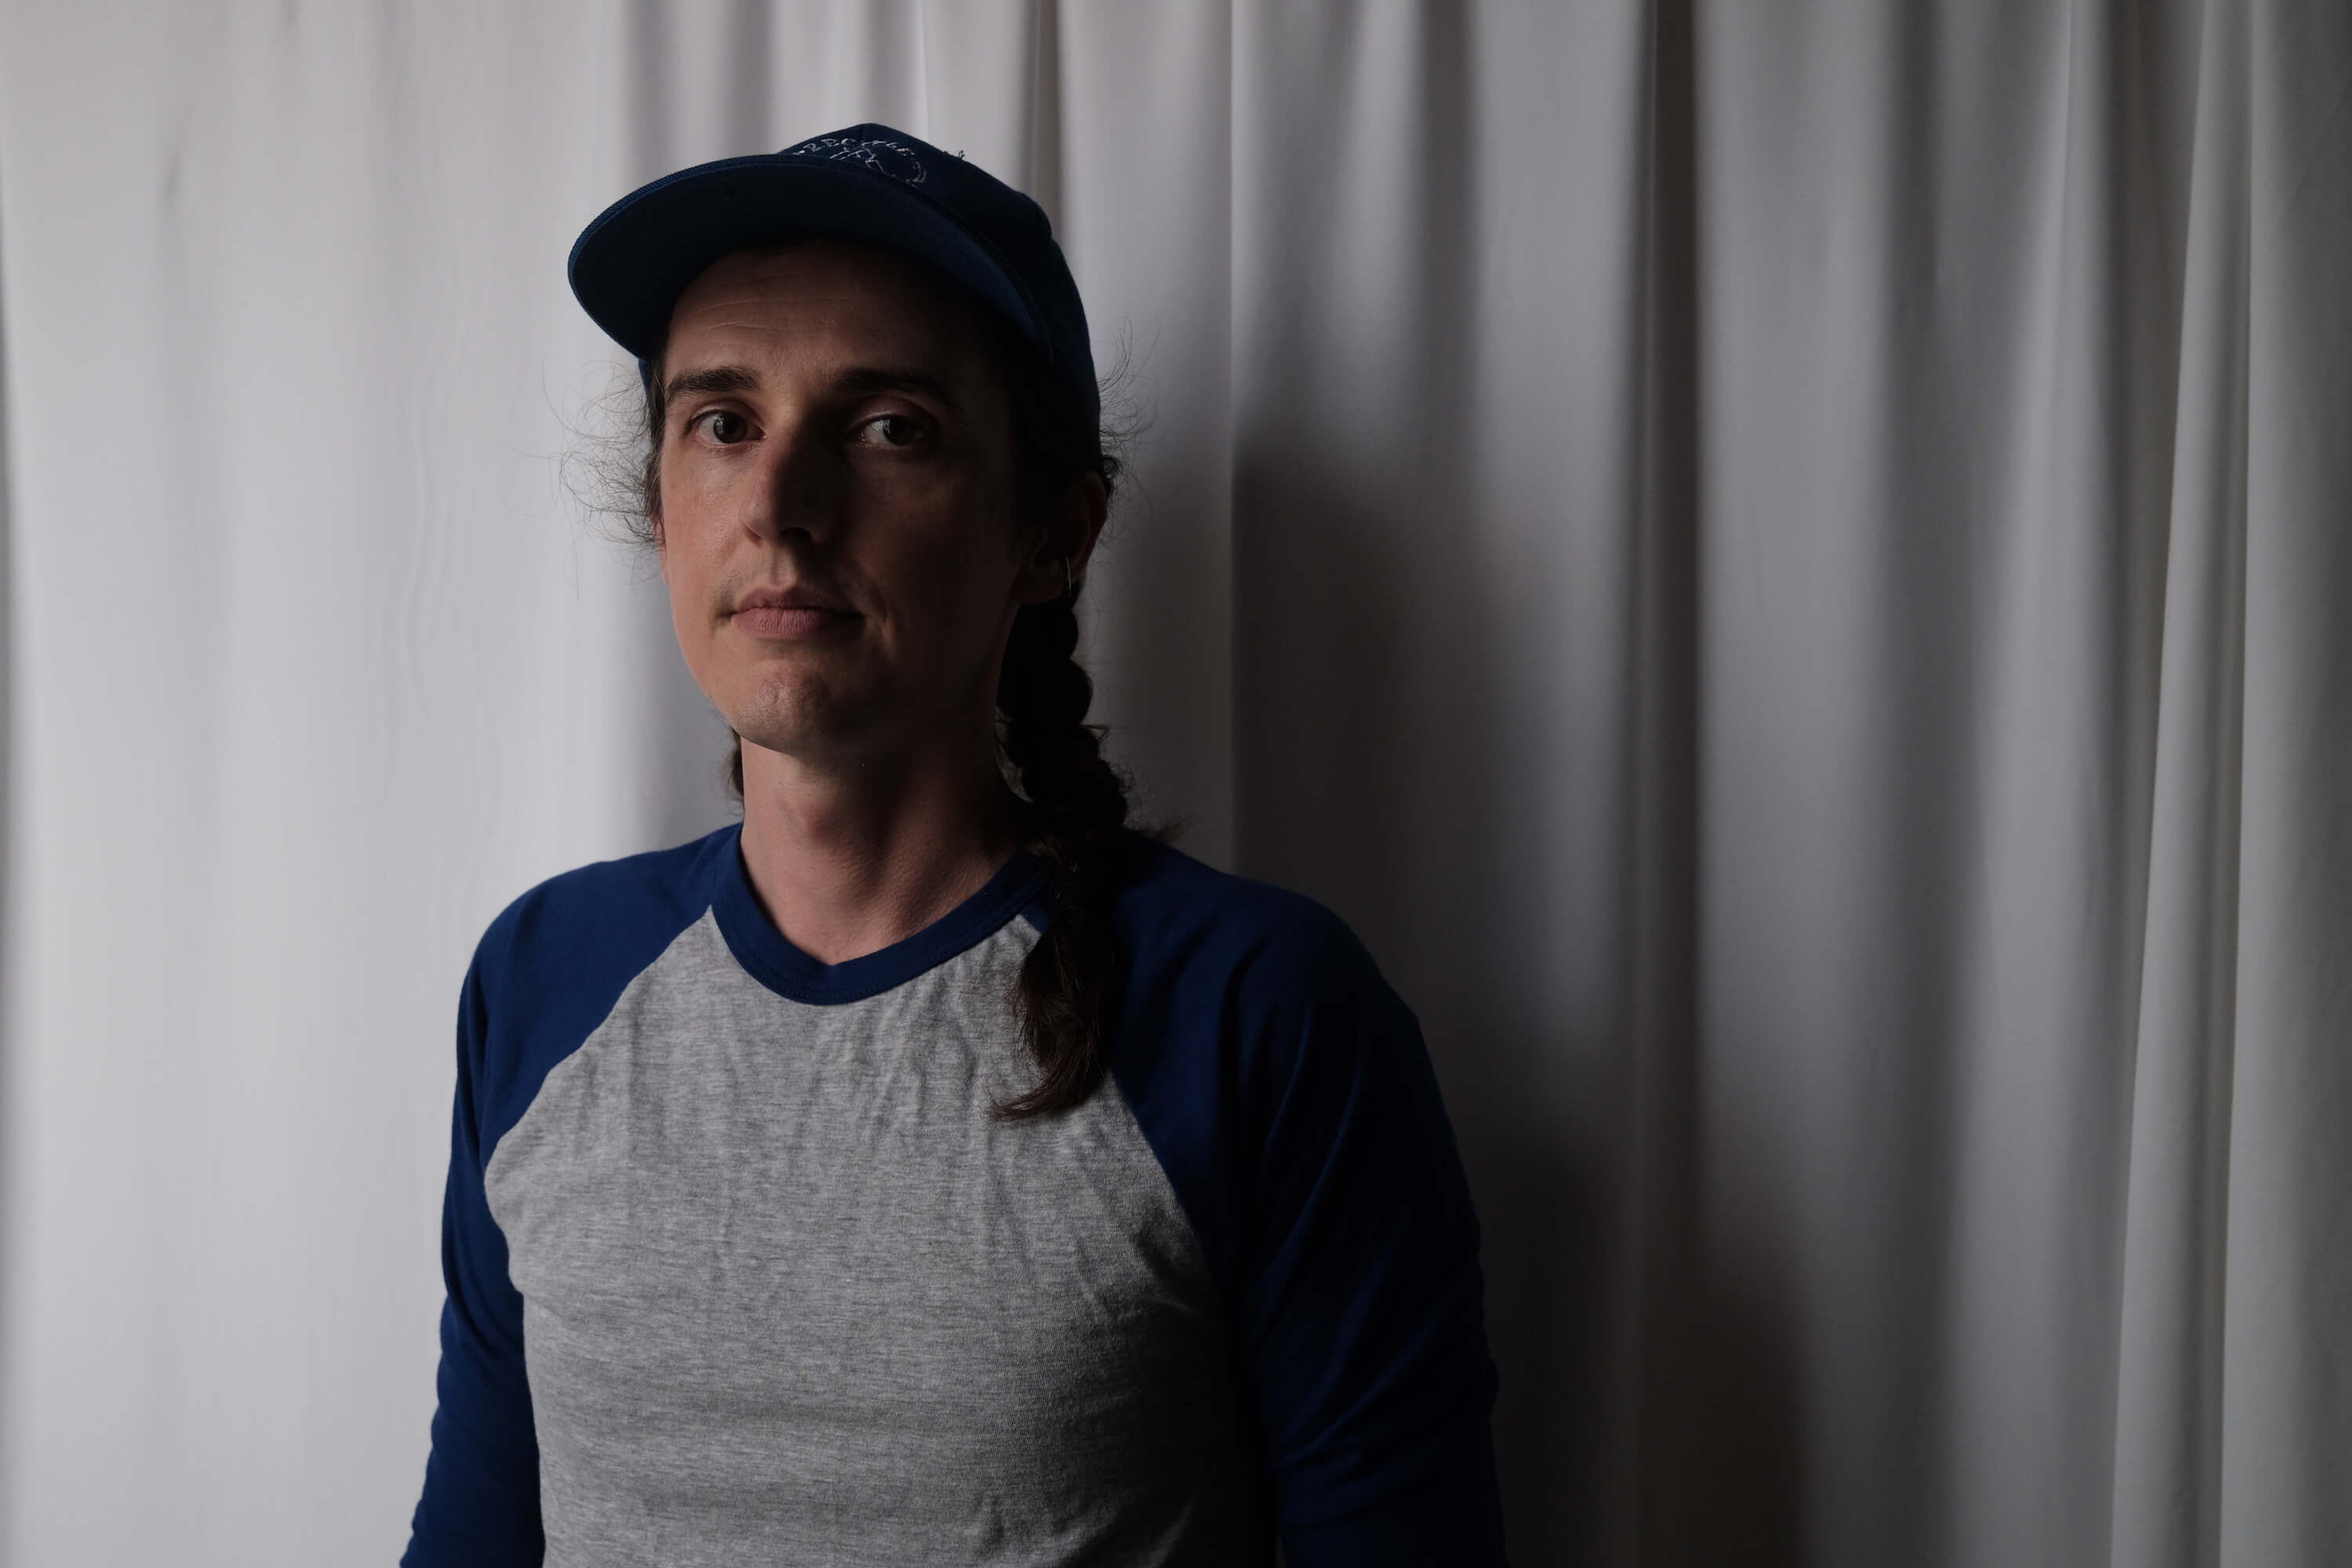 A portrait of Mike, a white person with braided hair, wearing a blue hat and a baseball shirt. They stand in front of a white fabric backdrop.